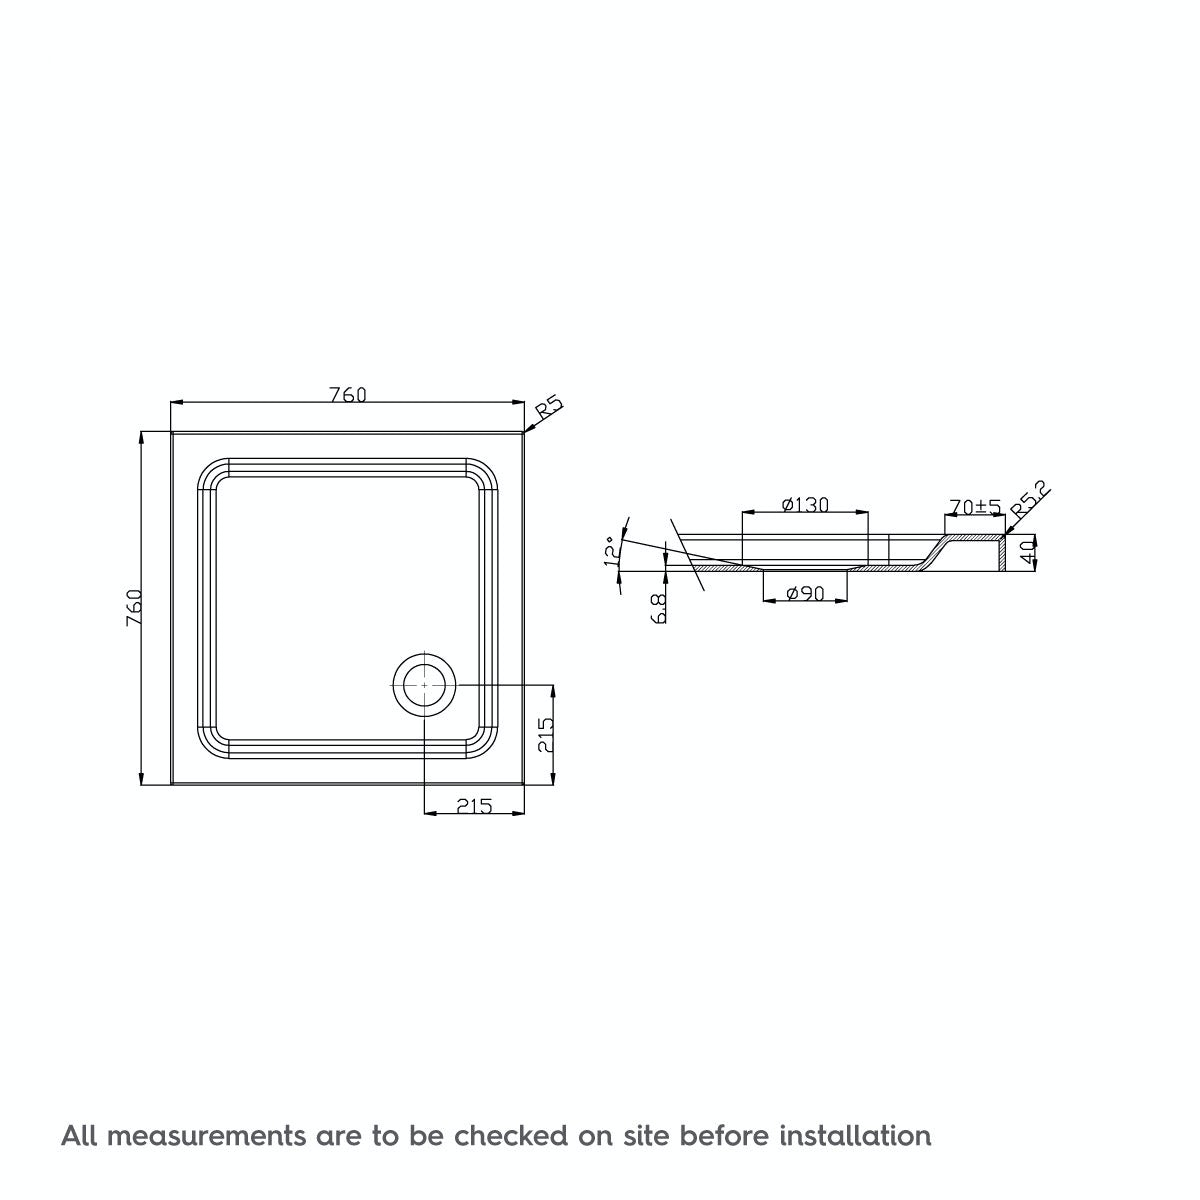 Dimensions for 760 x 760